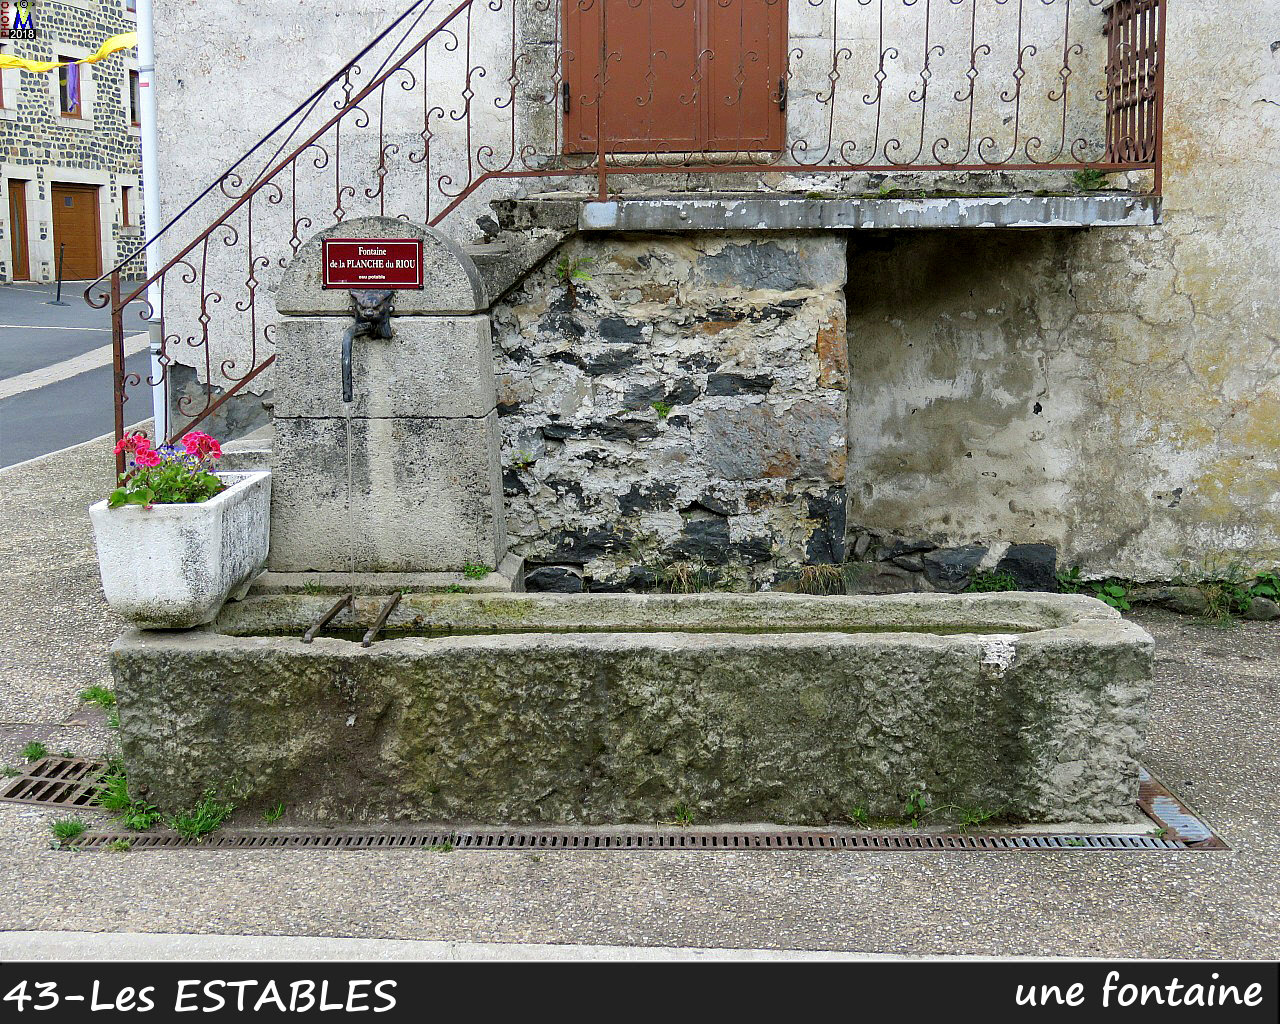 43LesESTABLES_fontaine_110.jpg